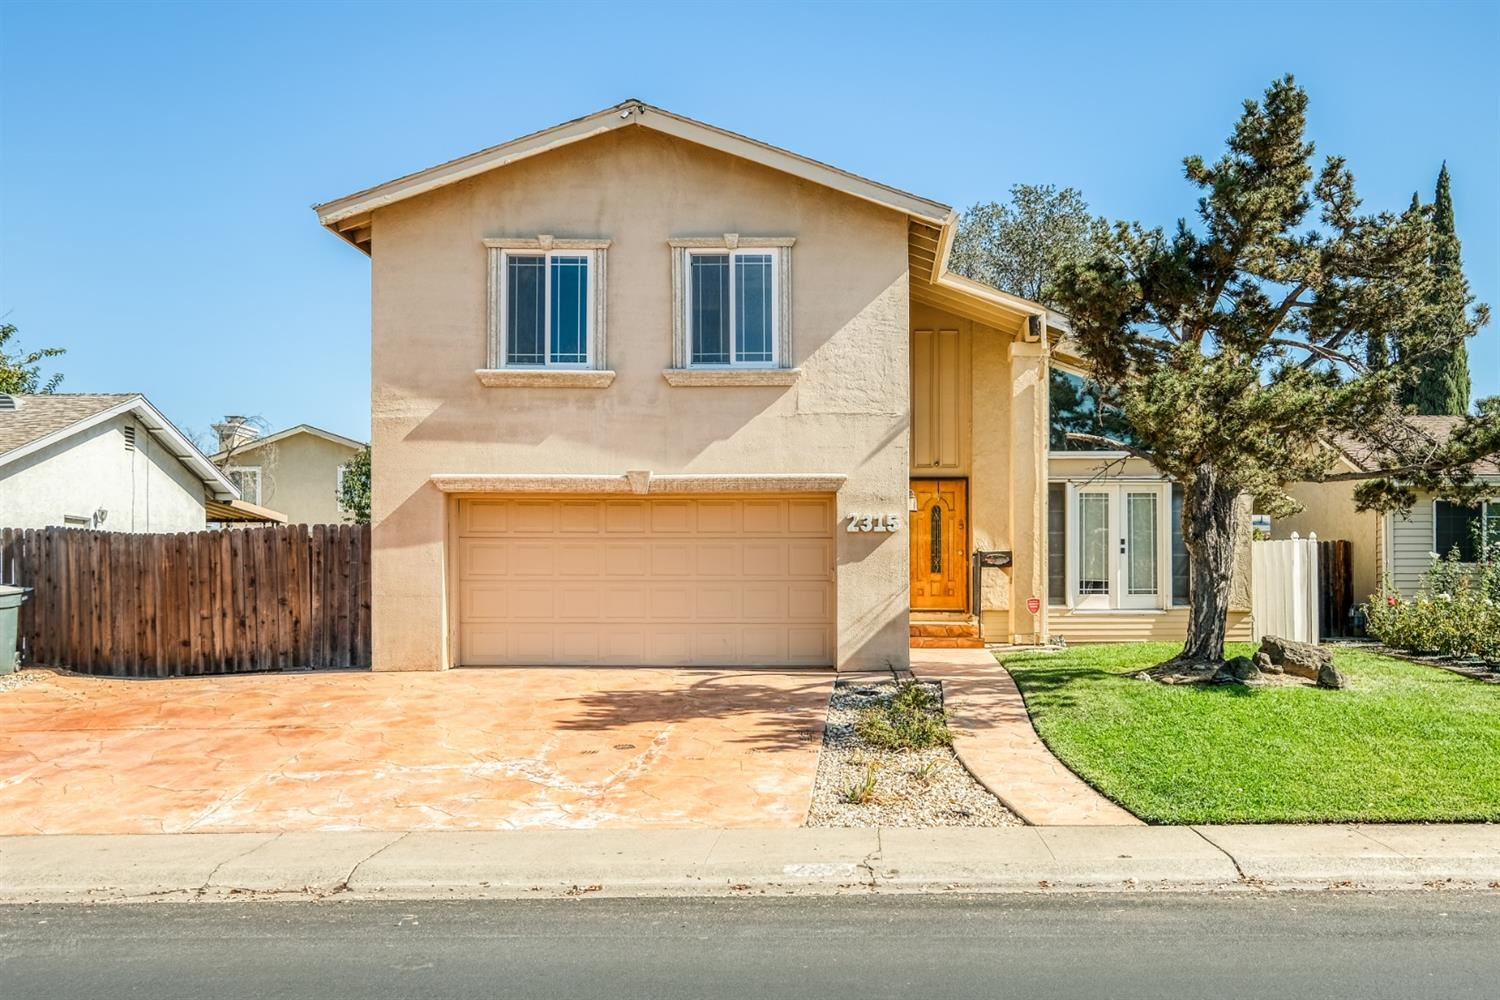 Photo of 2315 Vernon Street, Roseville, CA 95678 (MLS # 20063178)